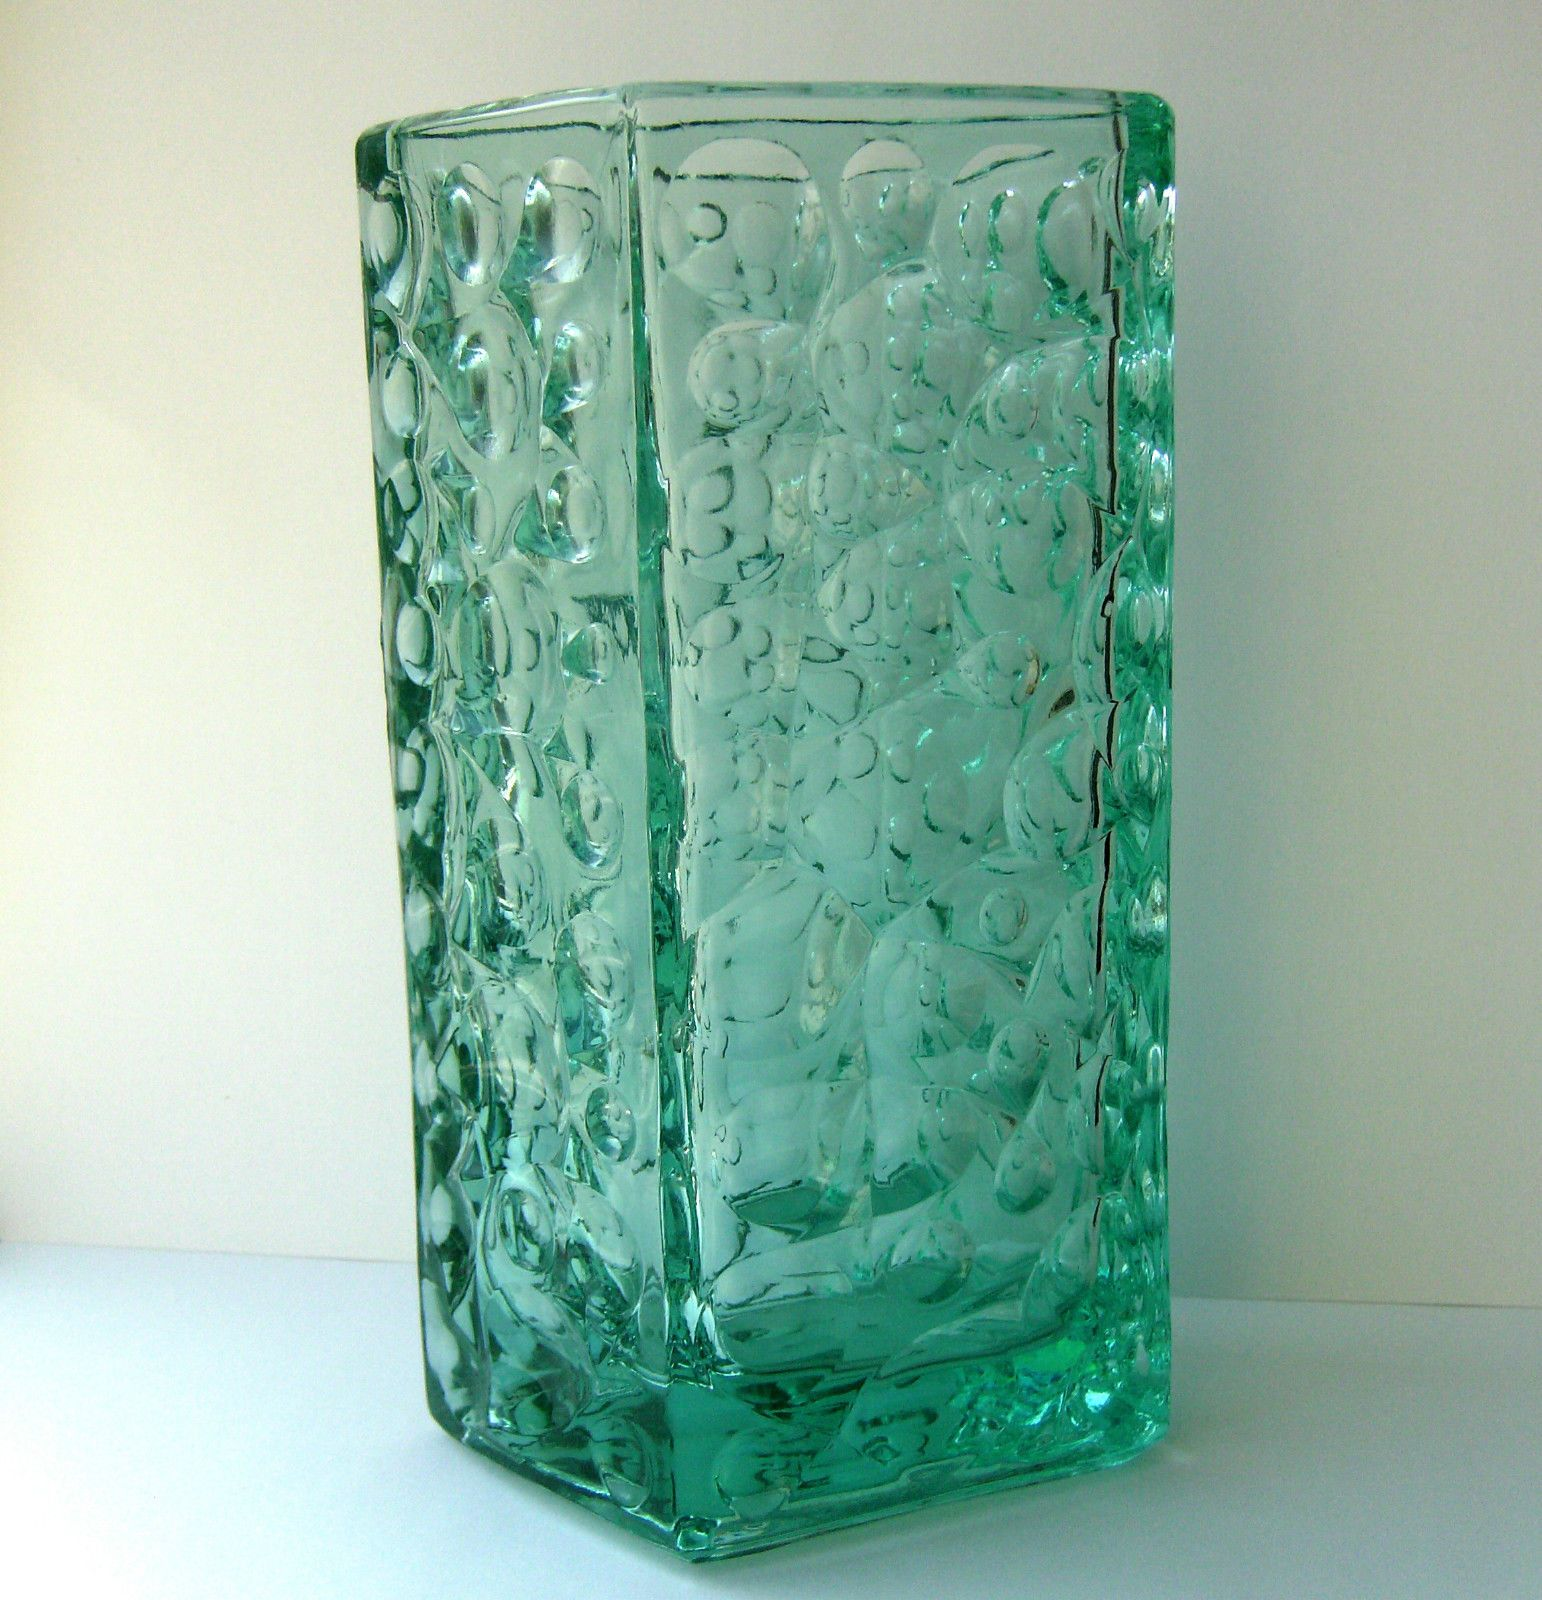 Large sklo union hand pressed glass vase jiri brabec for rosice large sklo union hand pressed glass vase jiri brabec for rosice c1969 ebay reviewsmspy